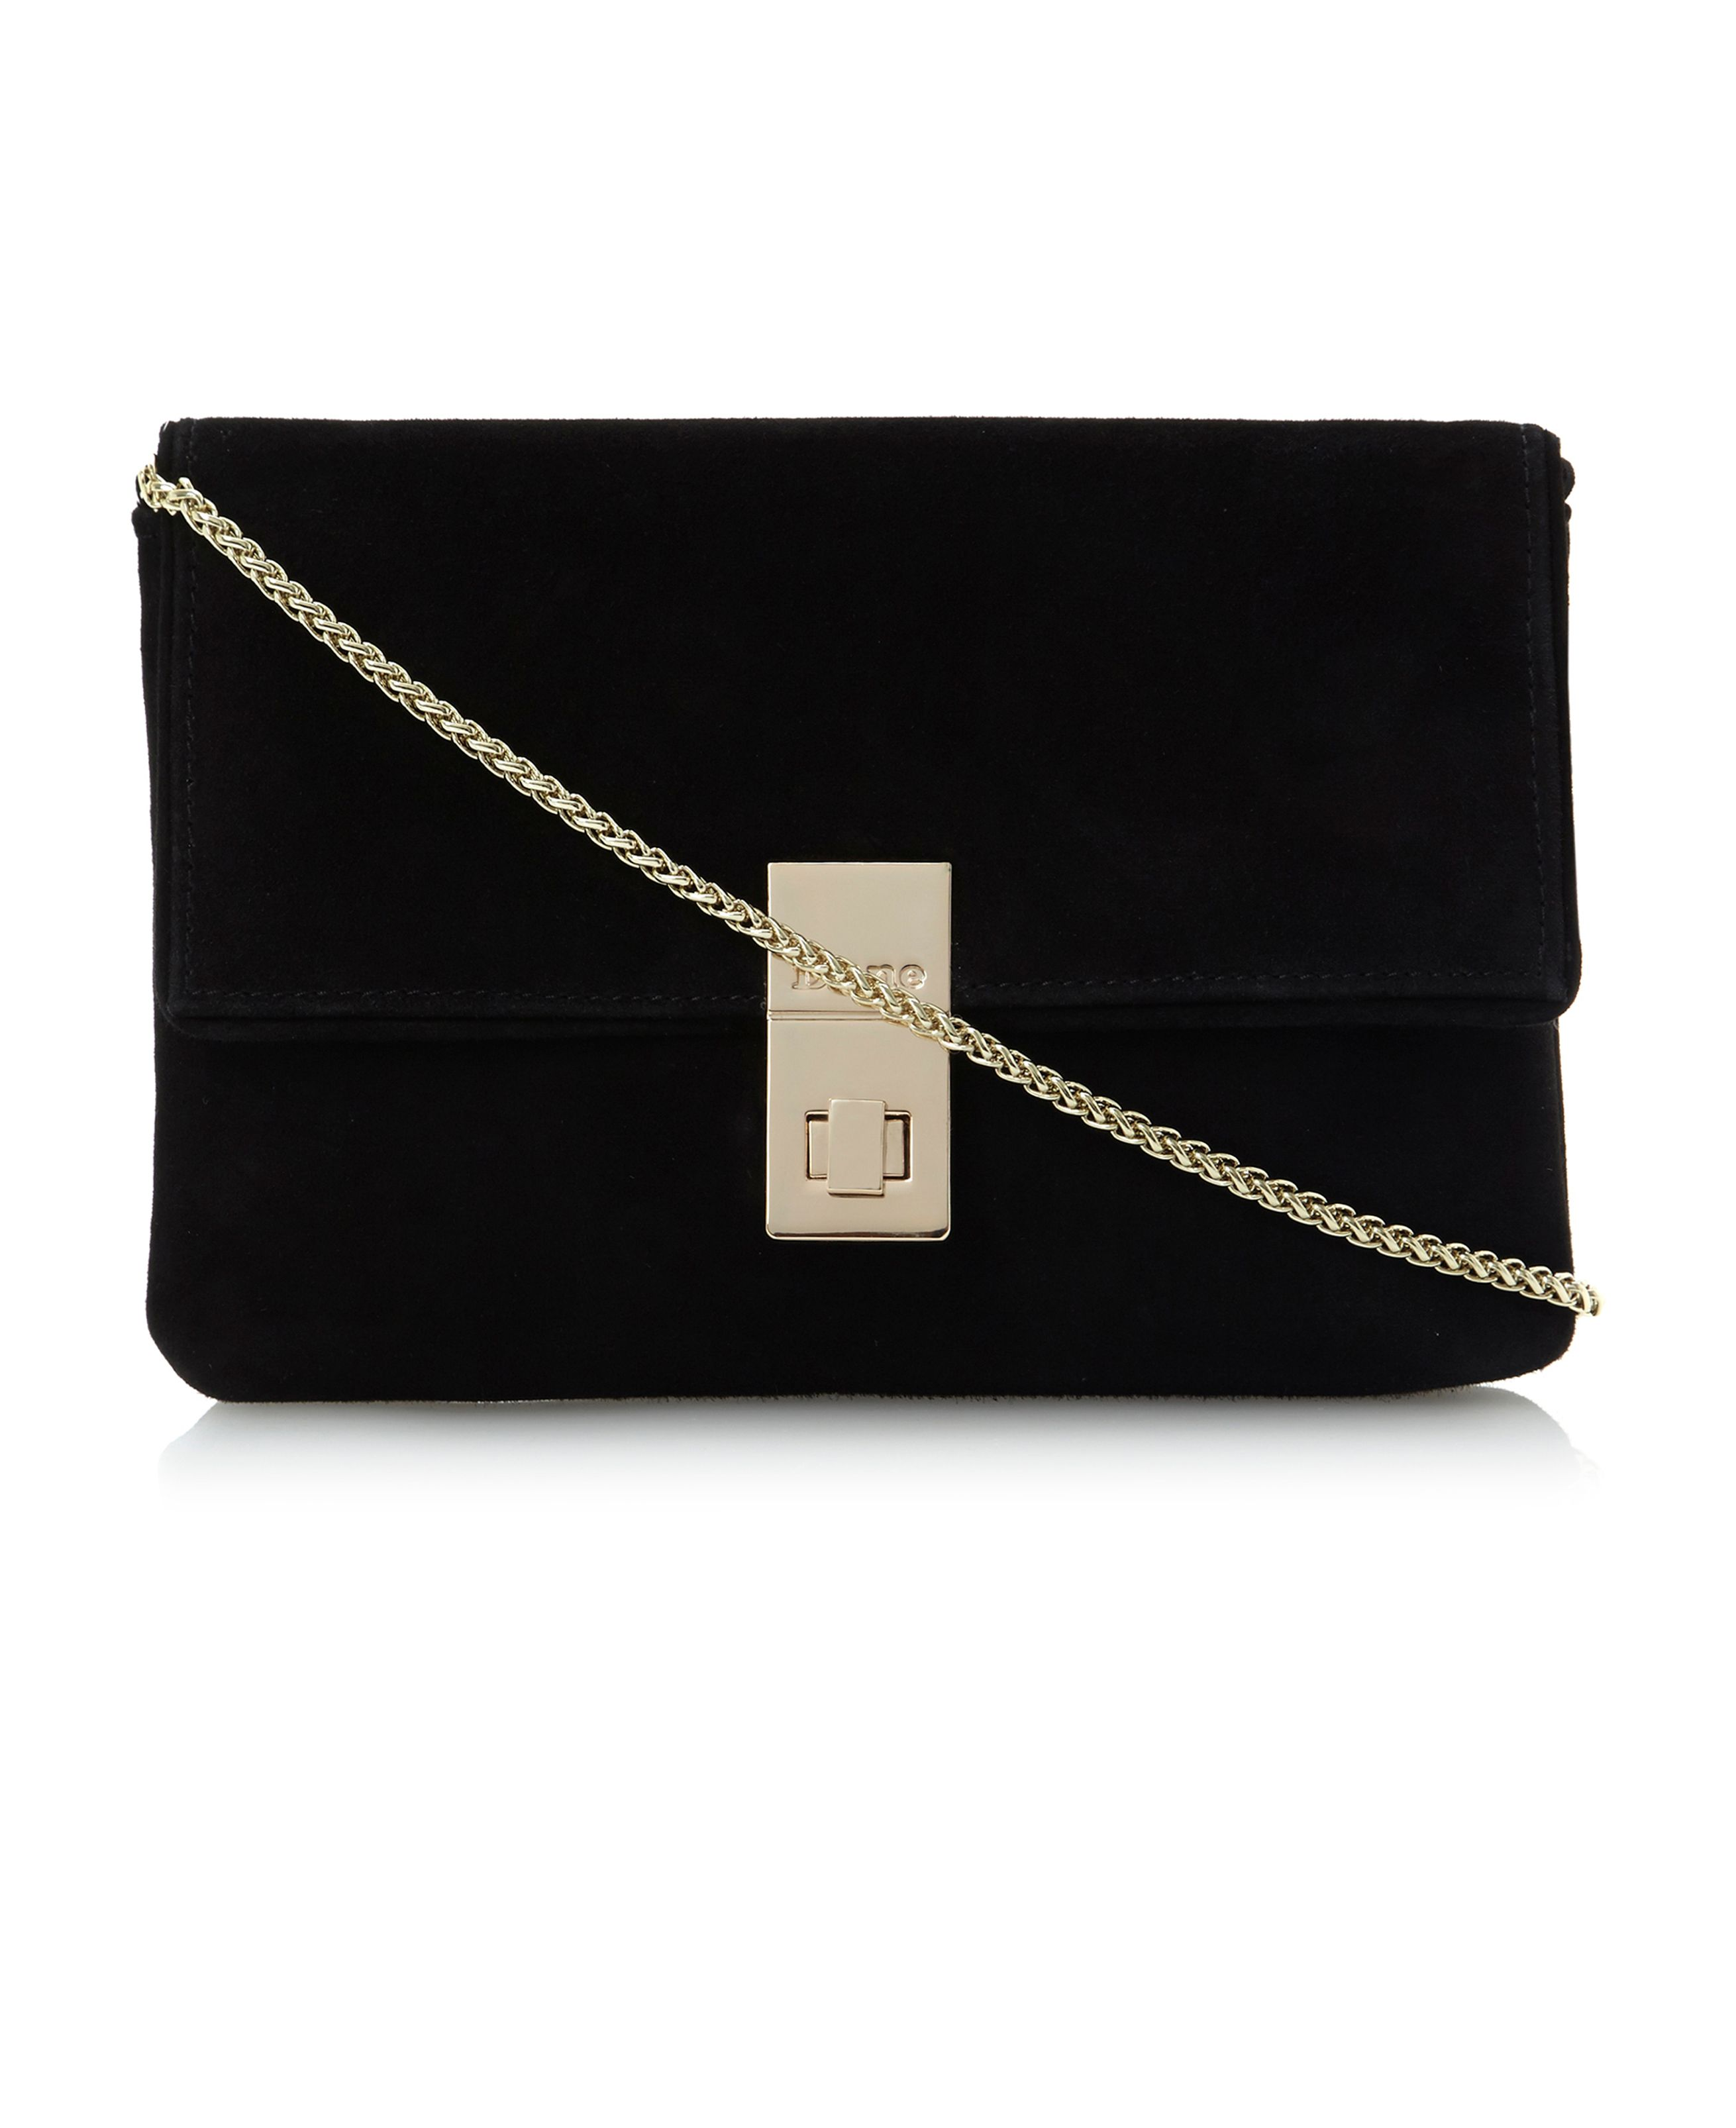 Ebba branded lock suede clutch bag